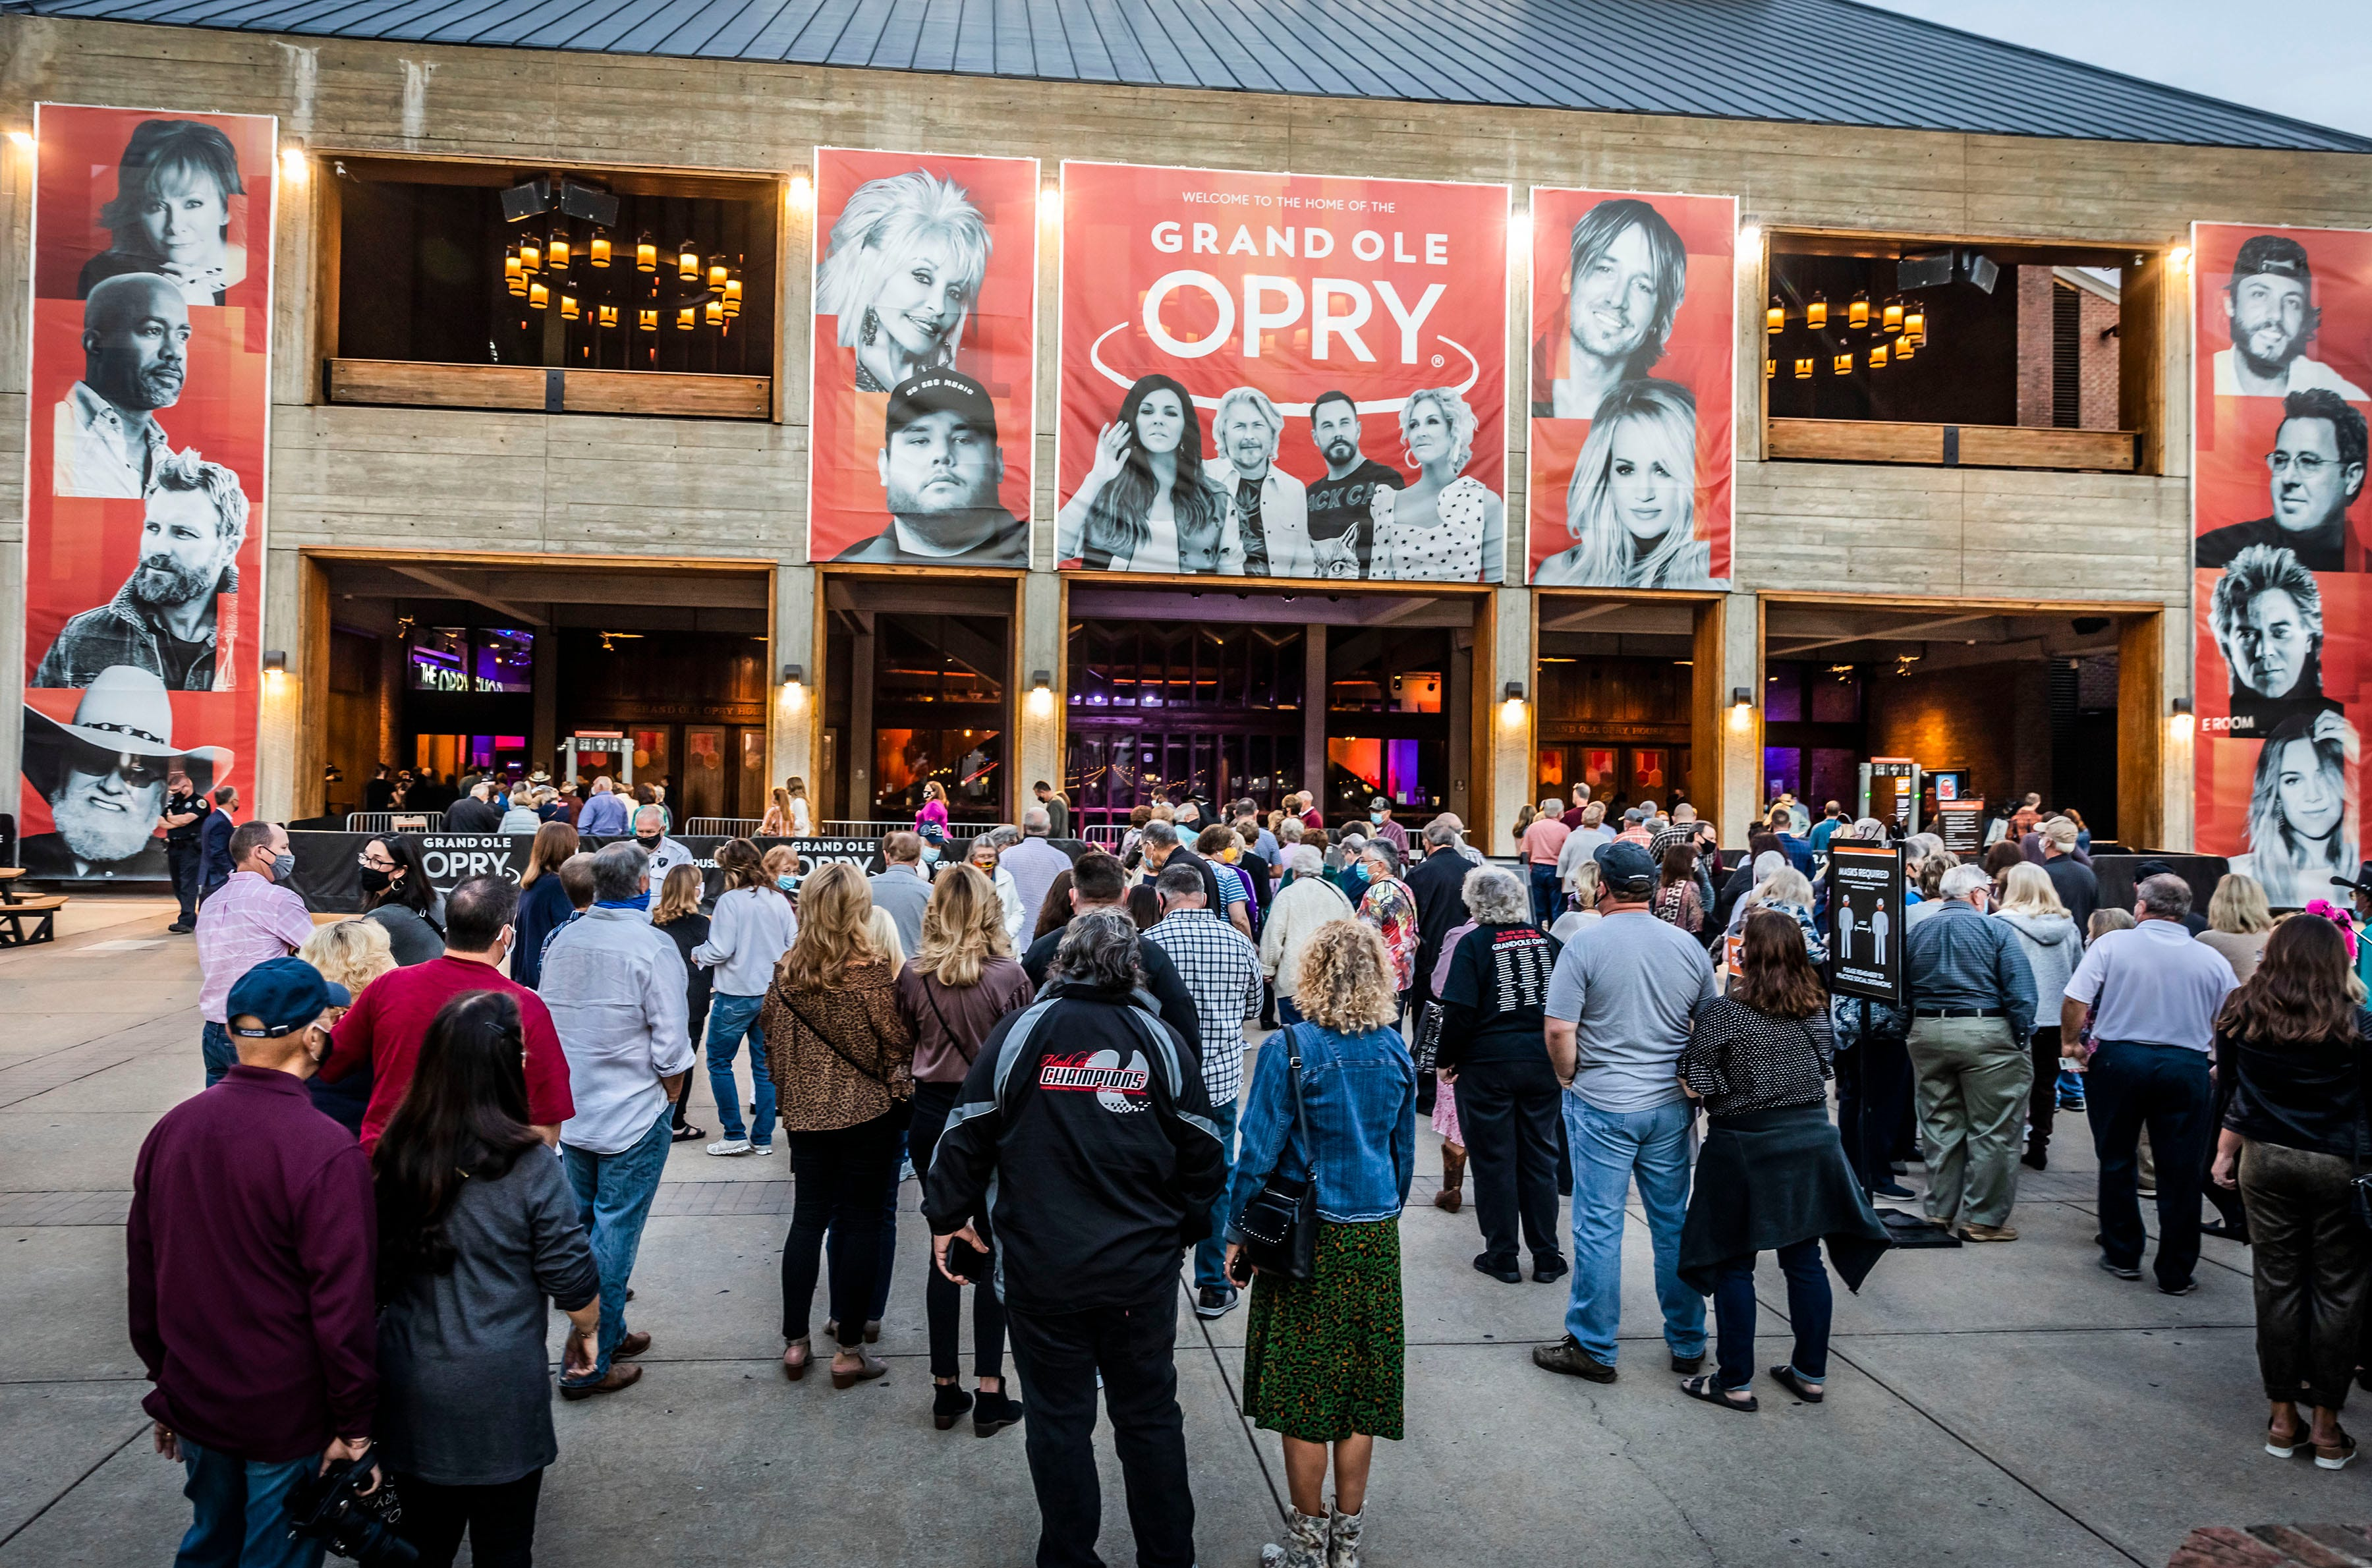 Grand Ole Opry removes capacity restrictions, full audience back on May 14